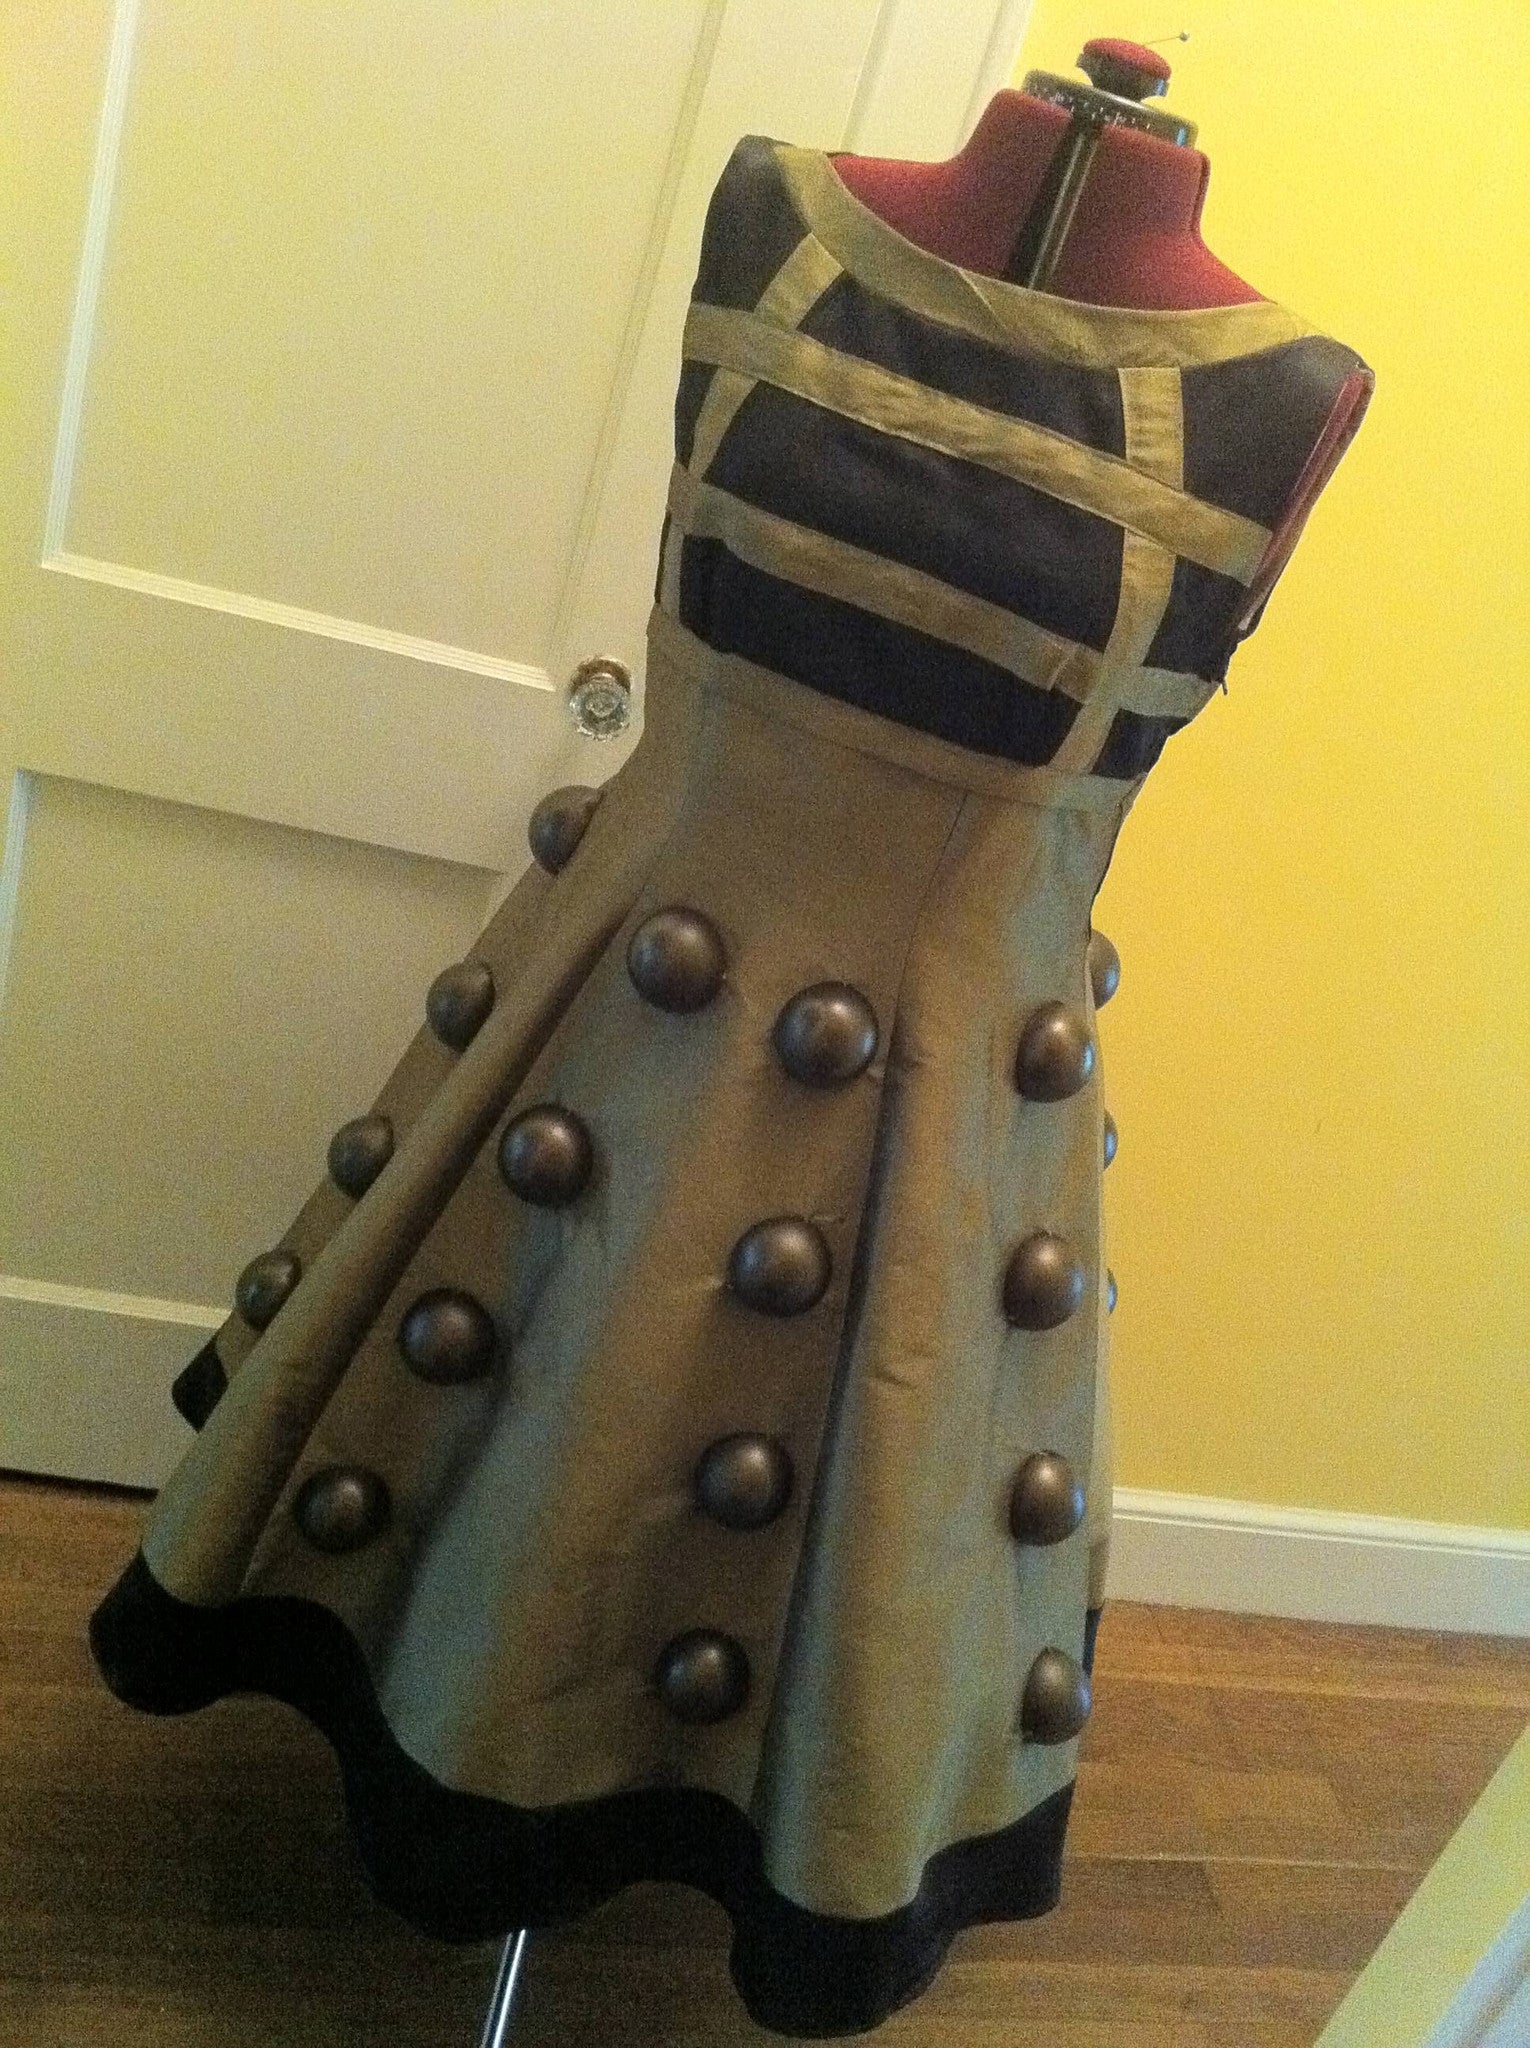 Cosplay Time! - Dalek Dress Tutorial